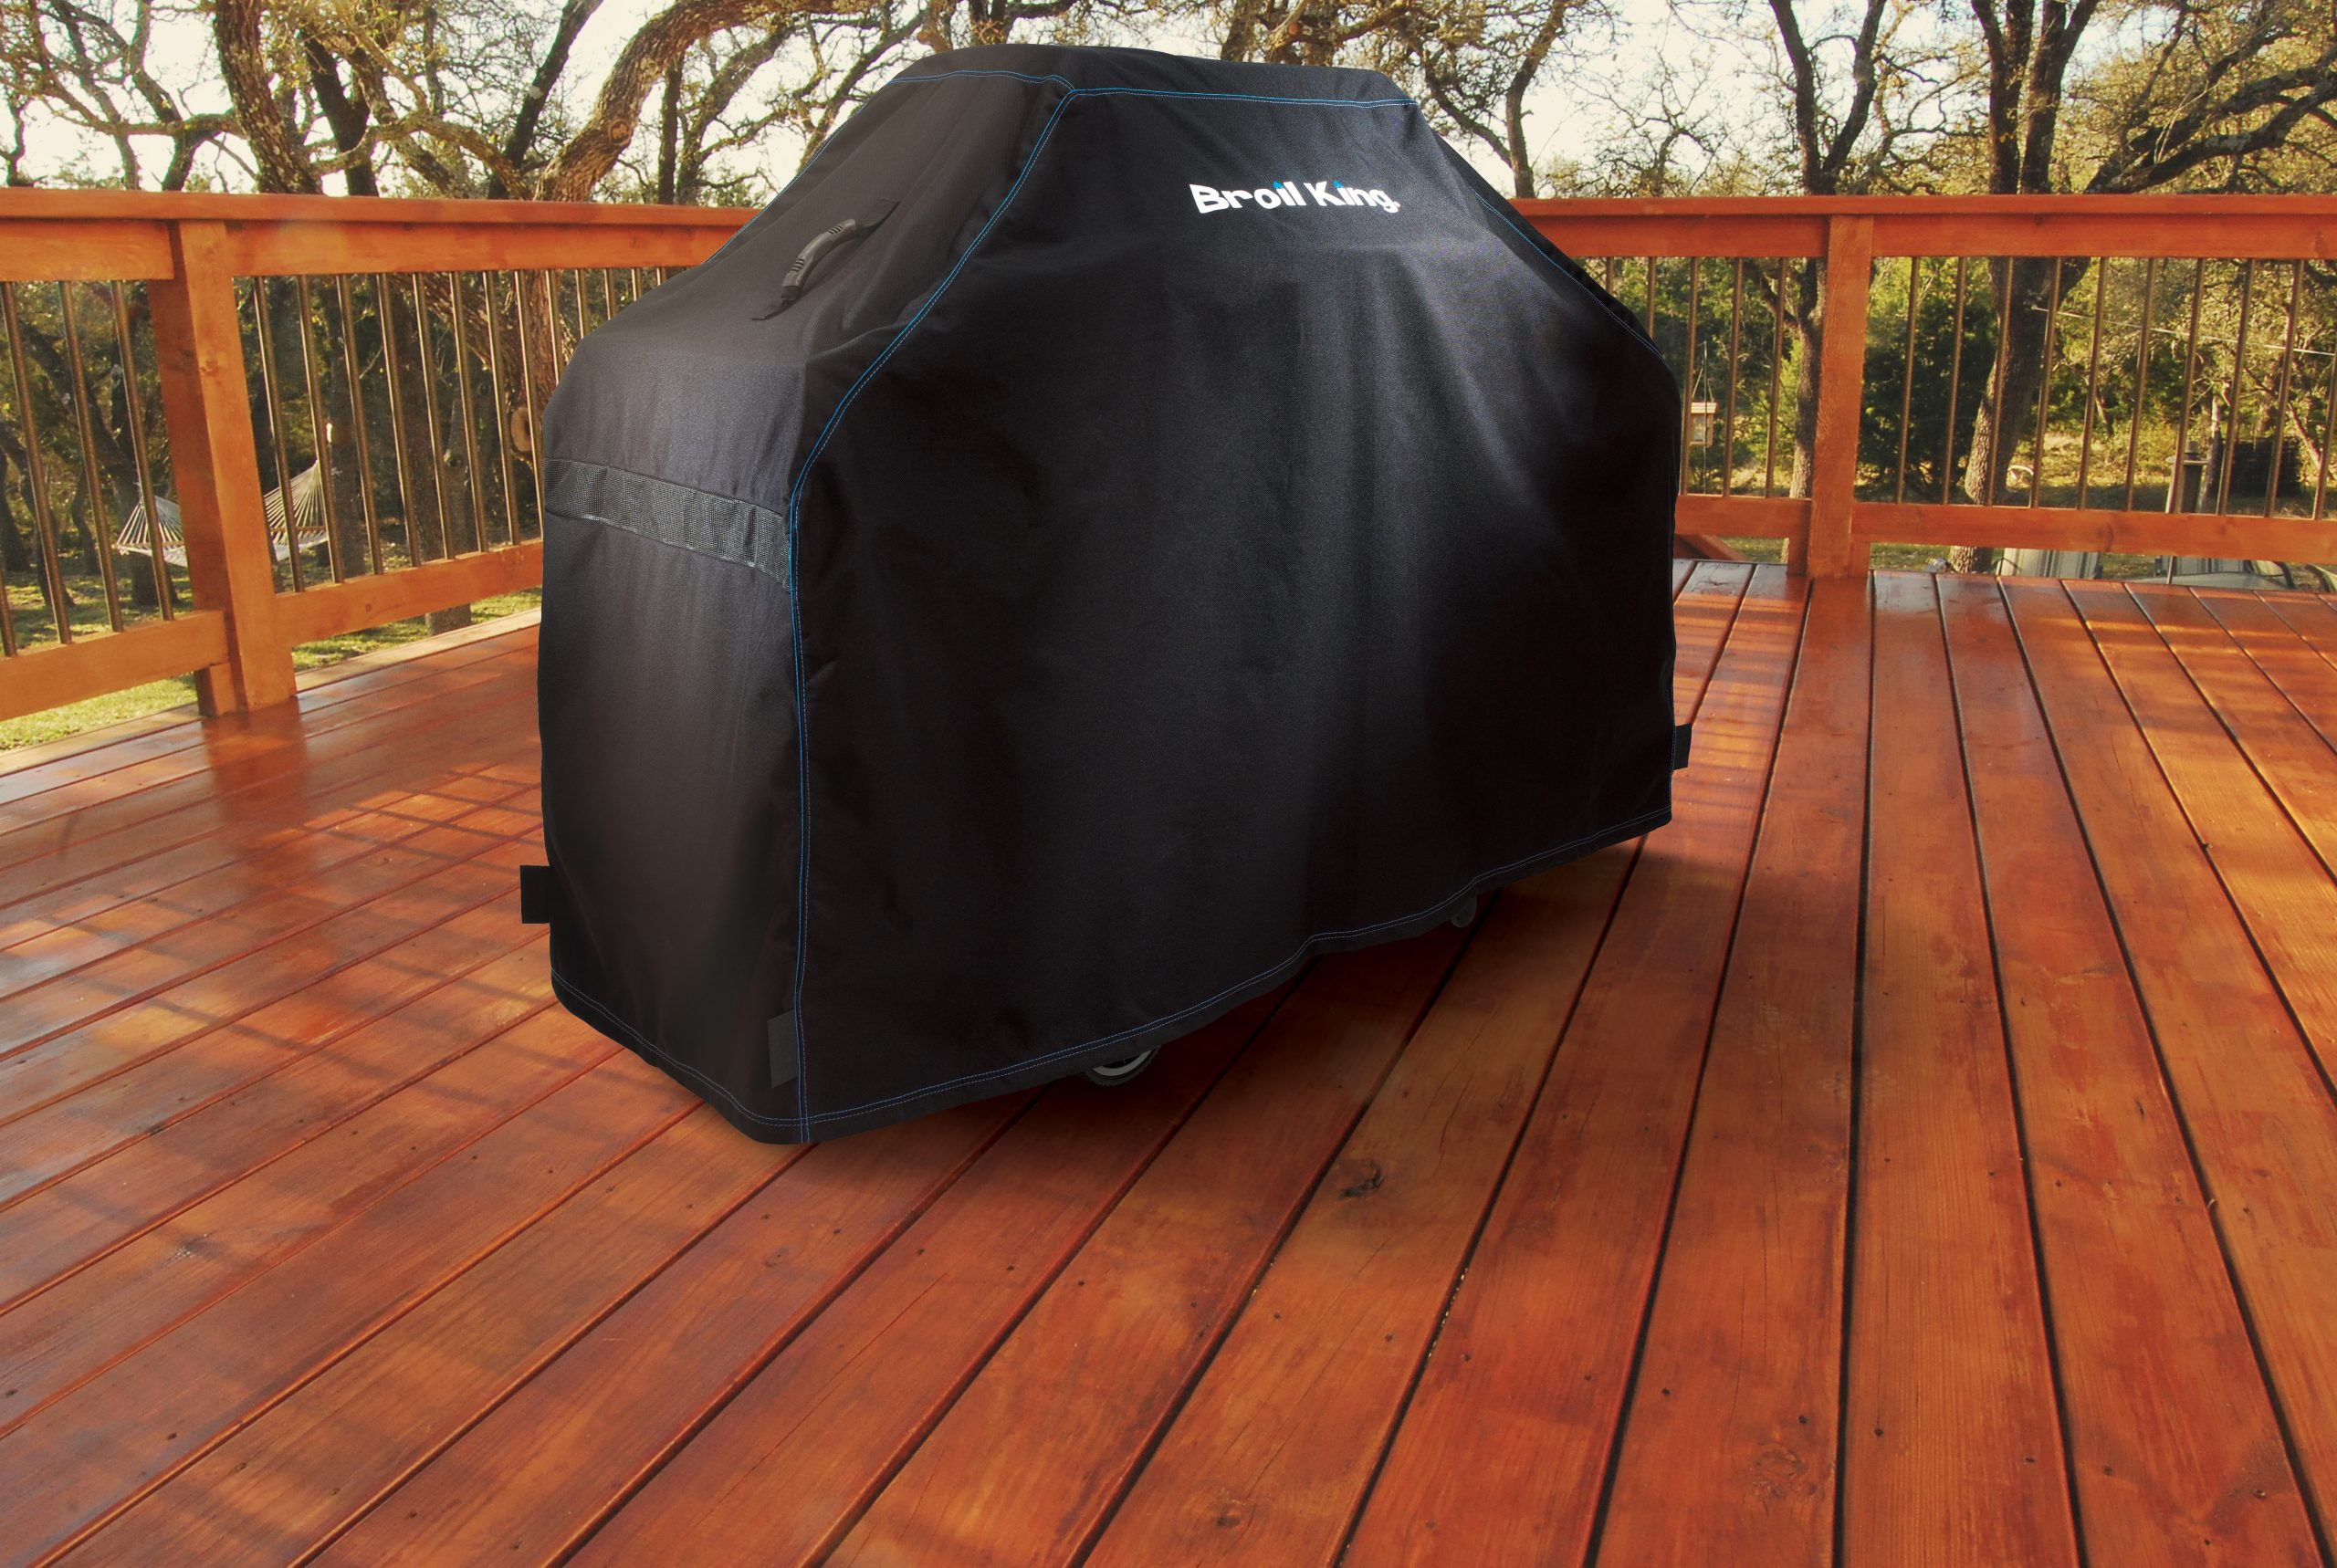 Broil King Grill Cover 68492 sitting on a wood patio